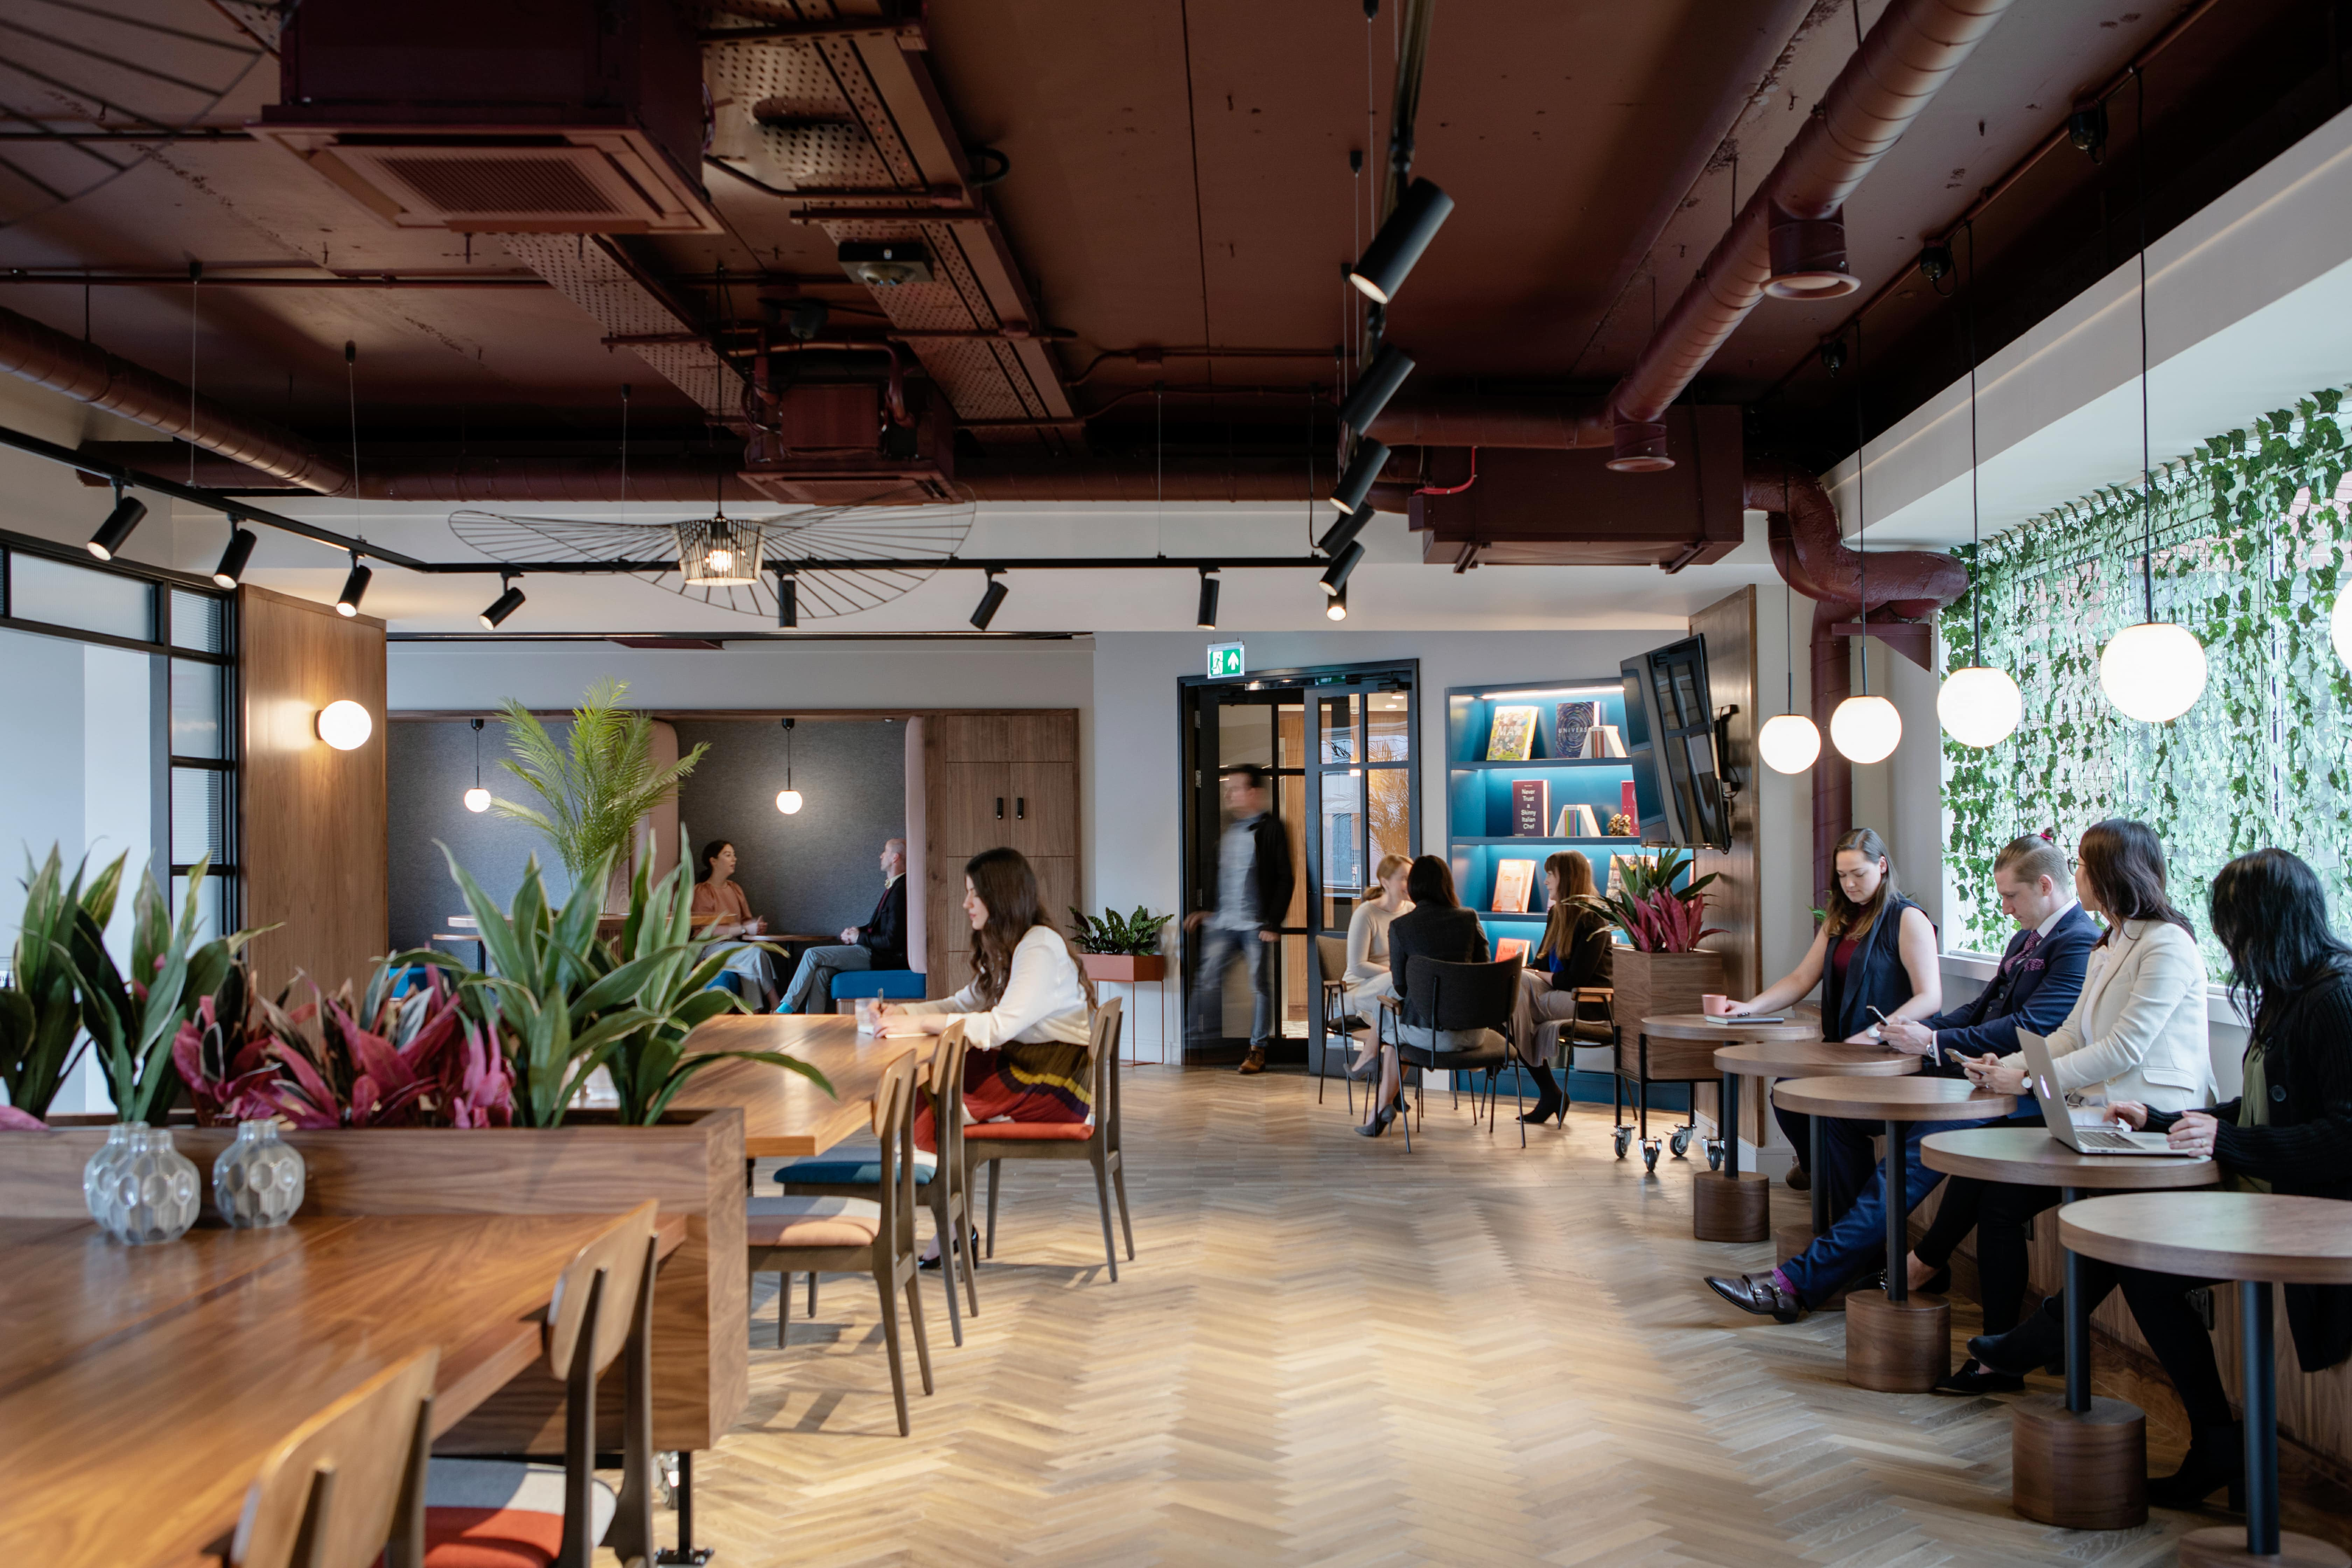 Inside a Glandore flexible workspace